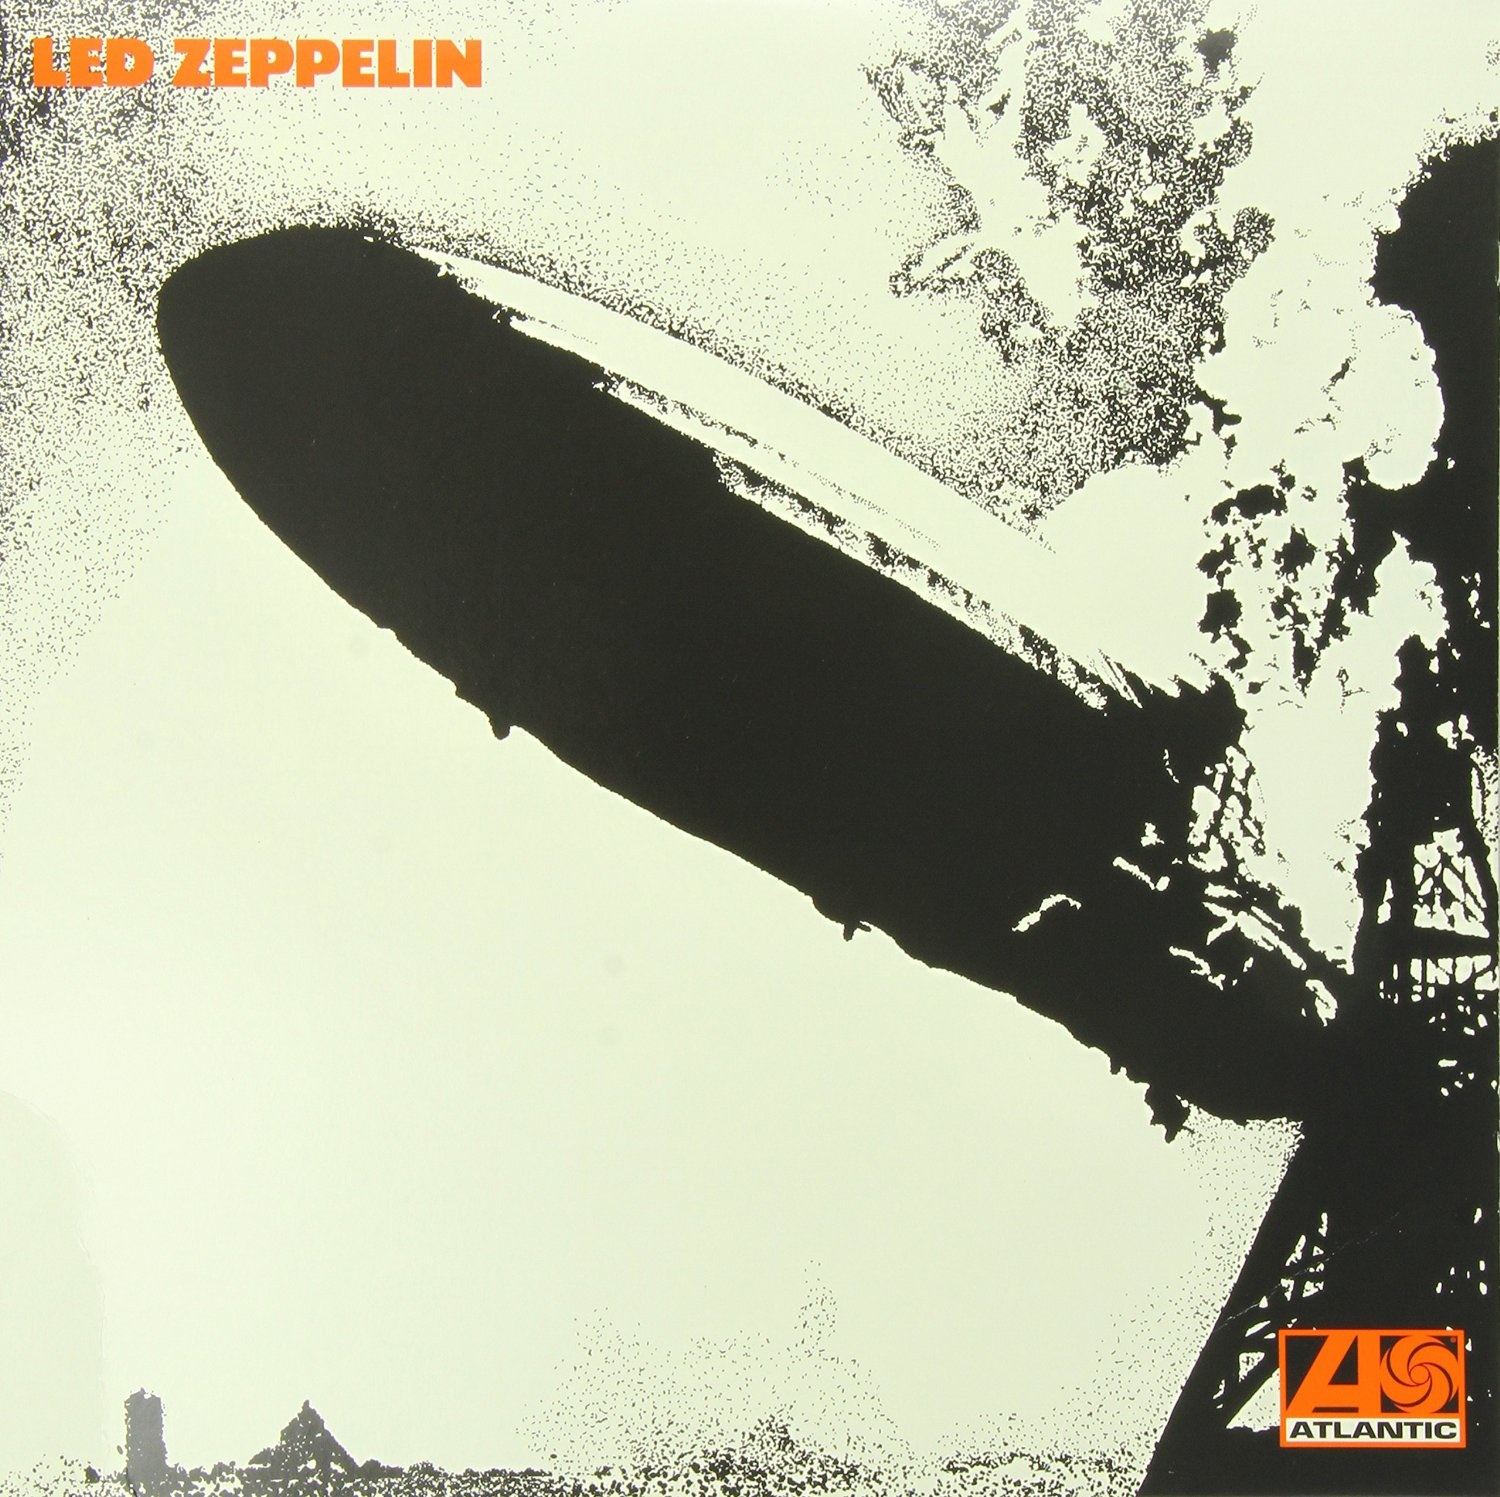 Led Zeppelin - Led Zeppelin I. Remastered Original (LP) led zeppelin – led zeppelin iii deluxe edition 2 lp